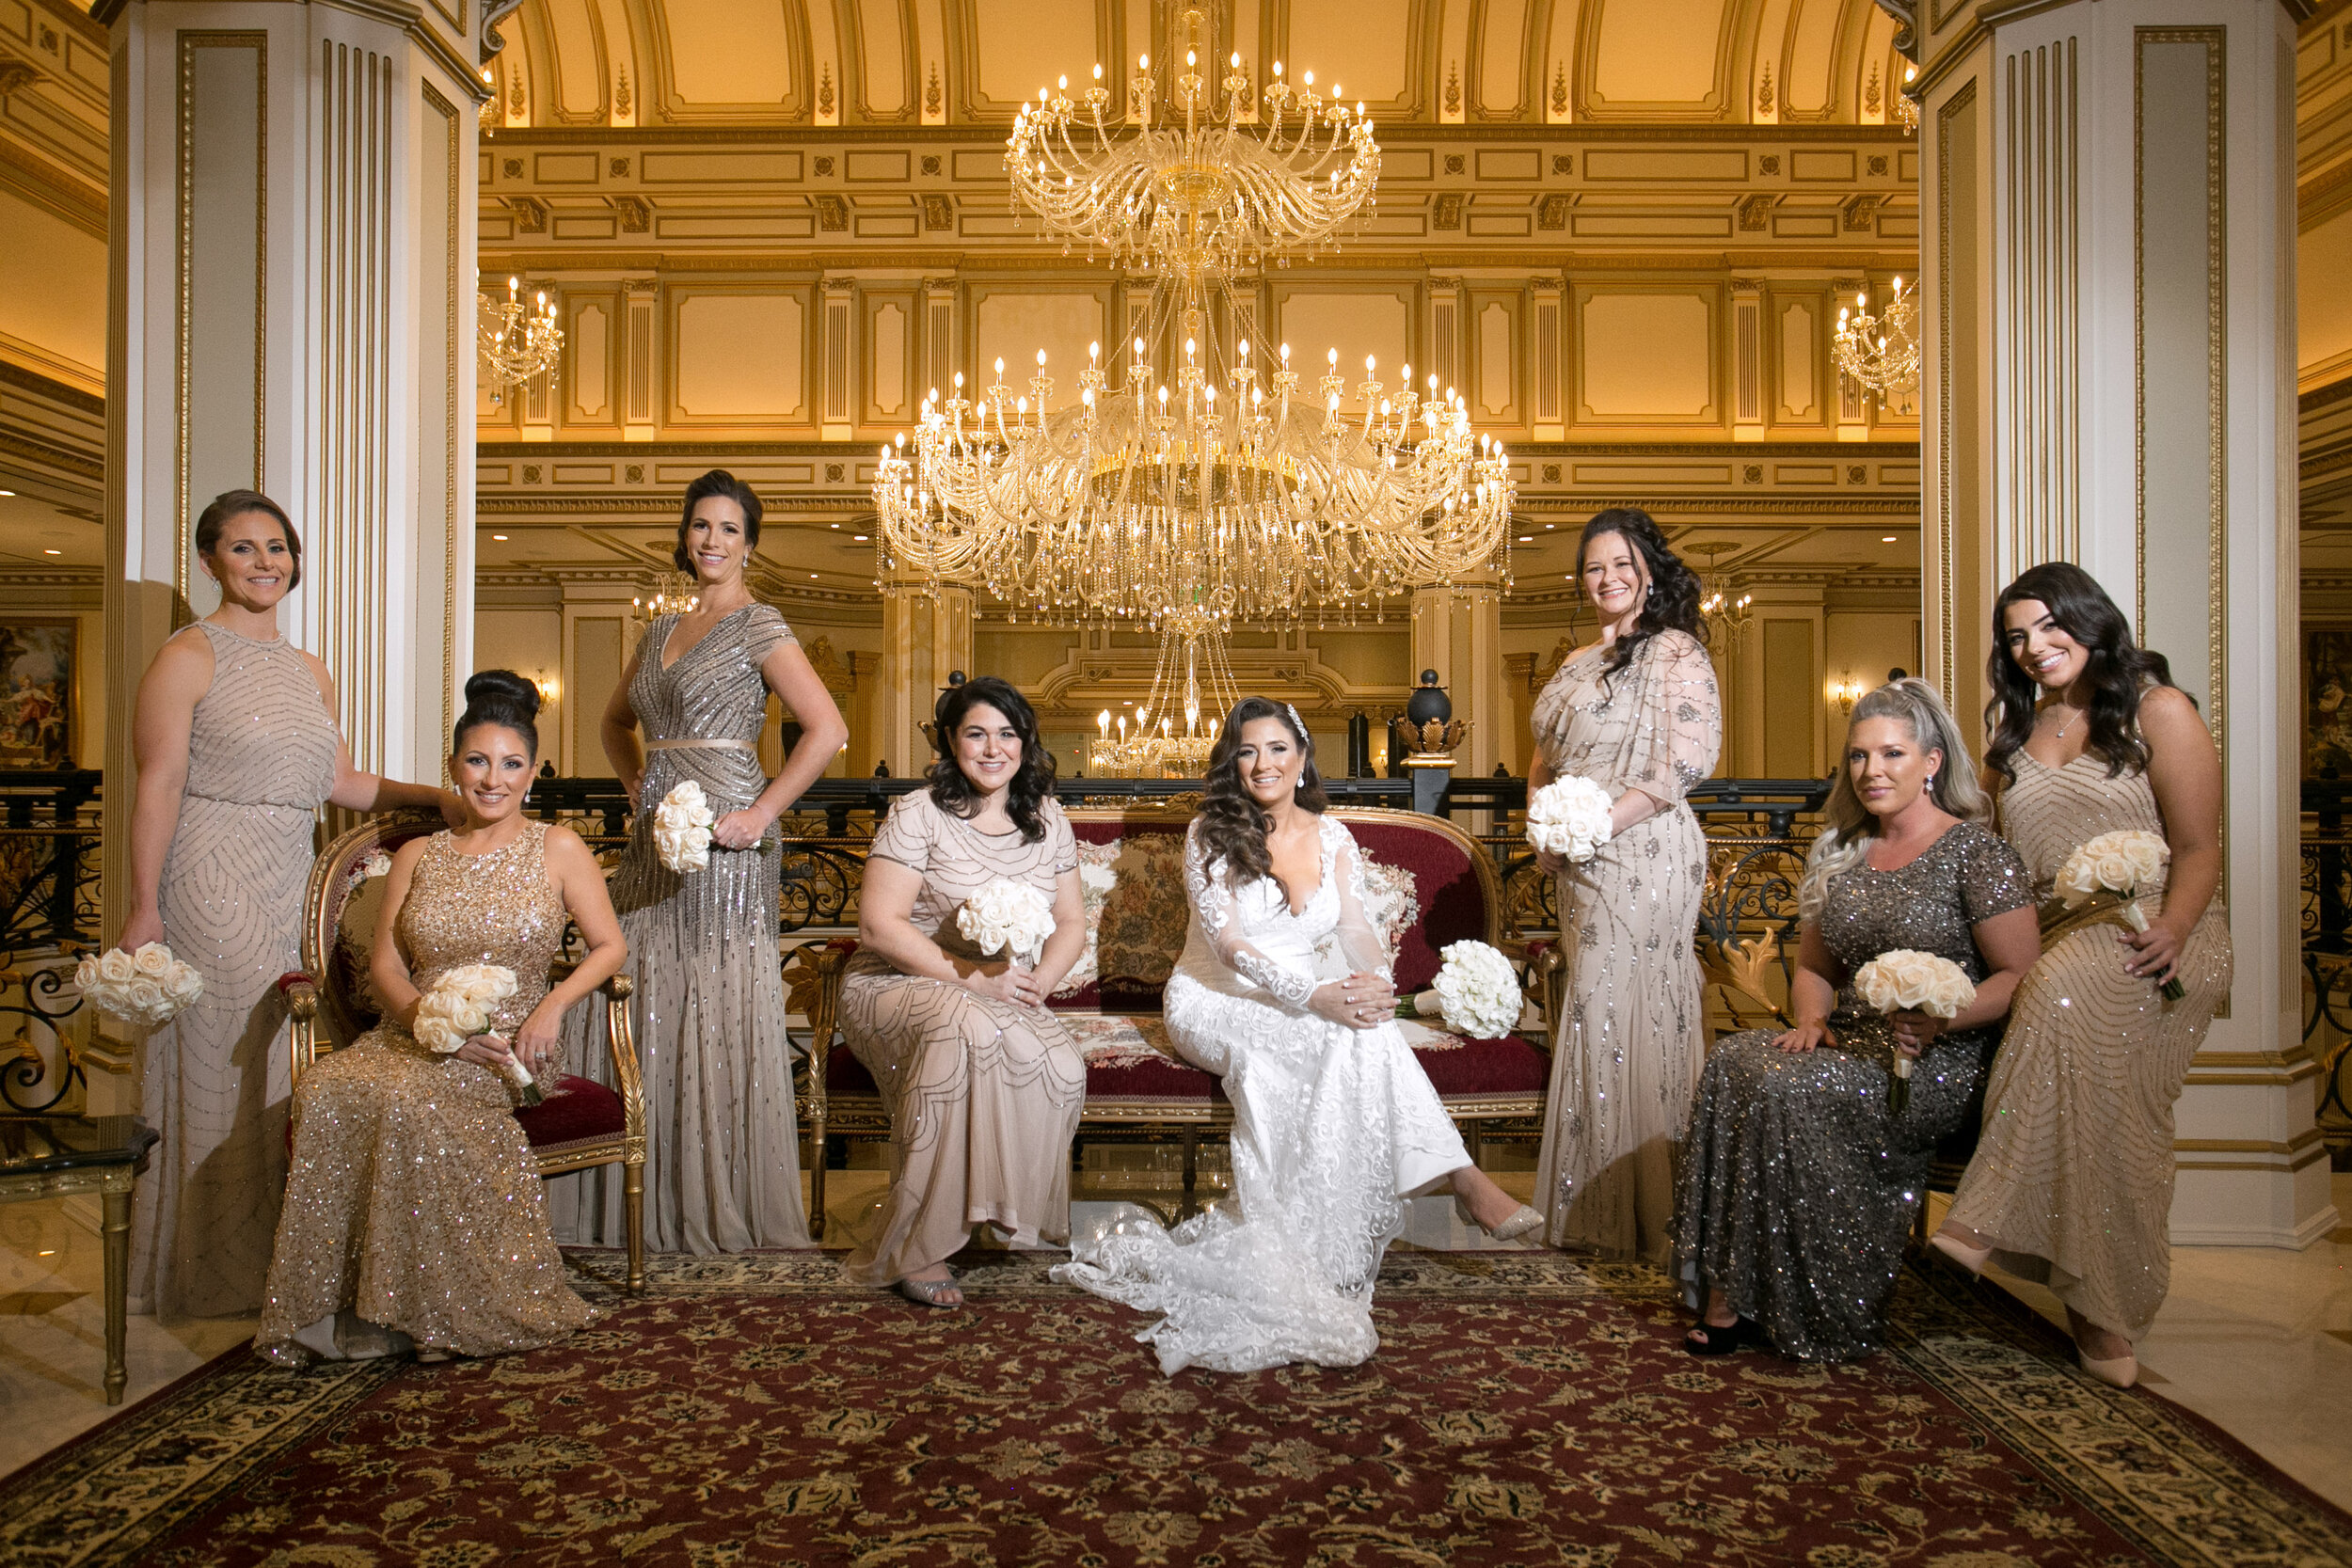 Legacy Castle with Bride and 7 brides posing in front of Ornate Chandelier